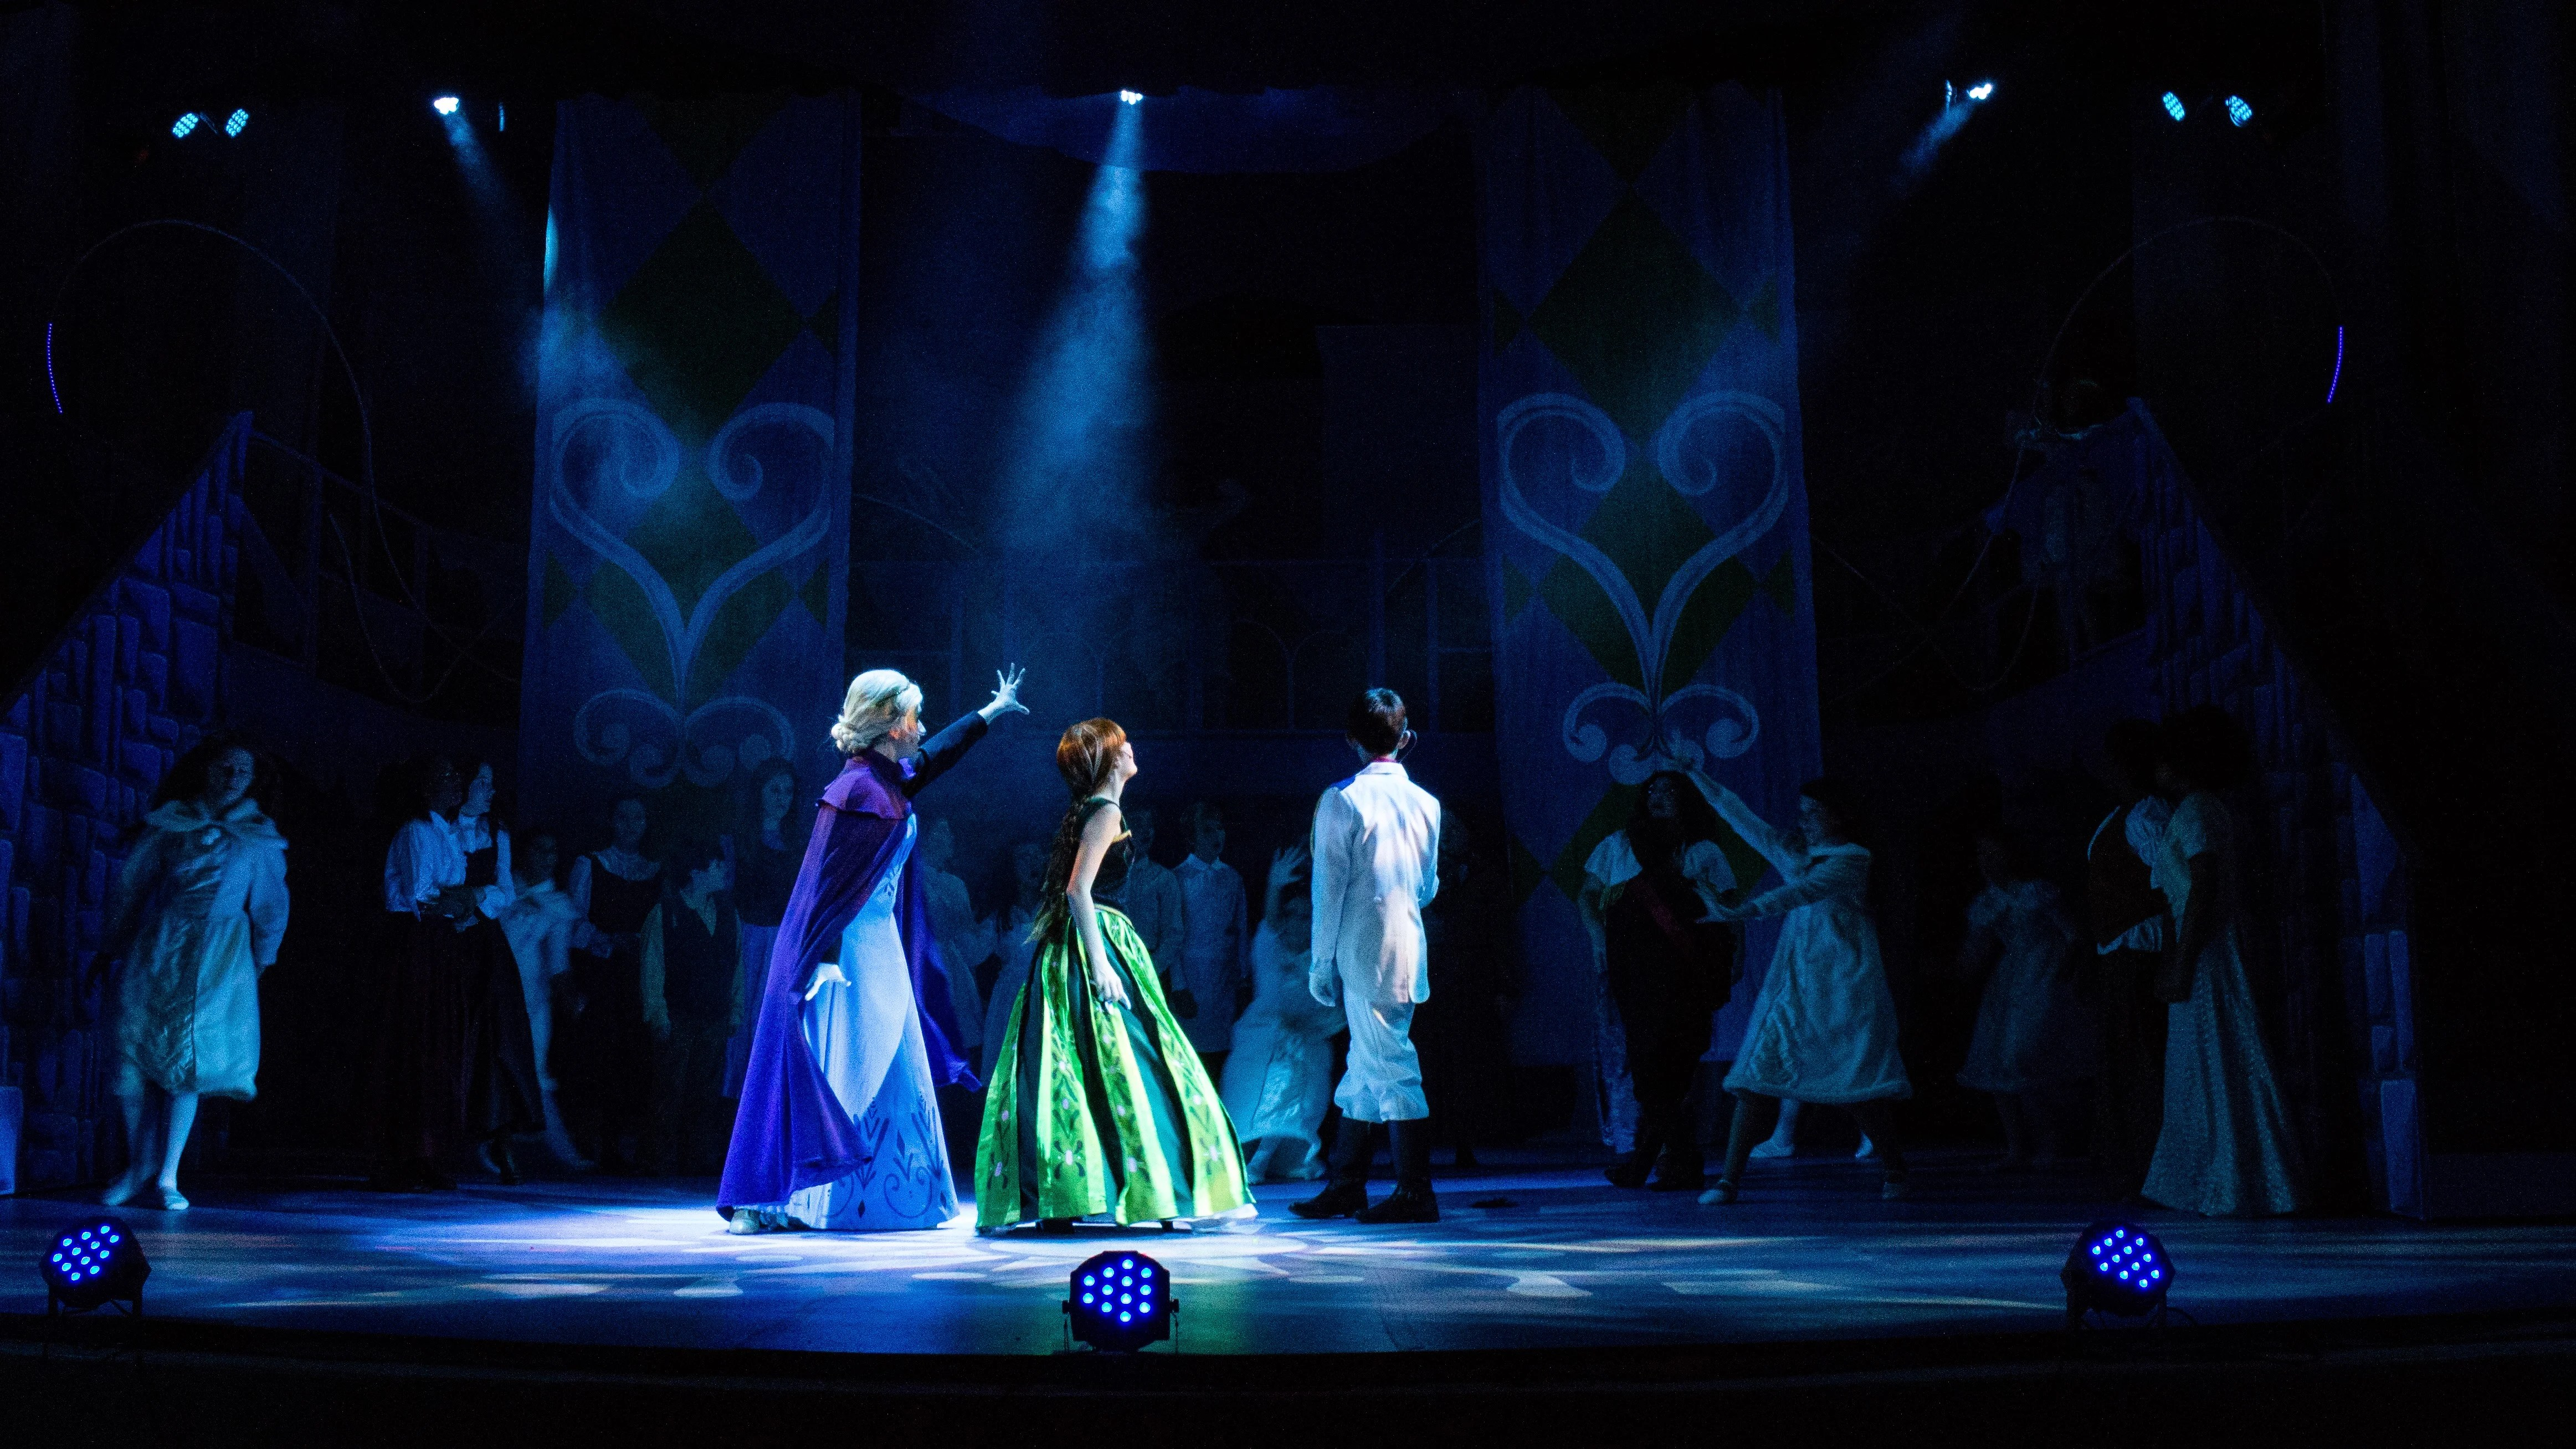 discuss solutions and offer training for theatrical lighting